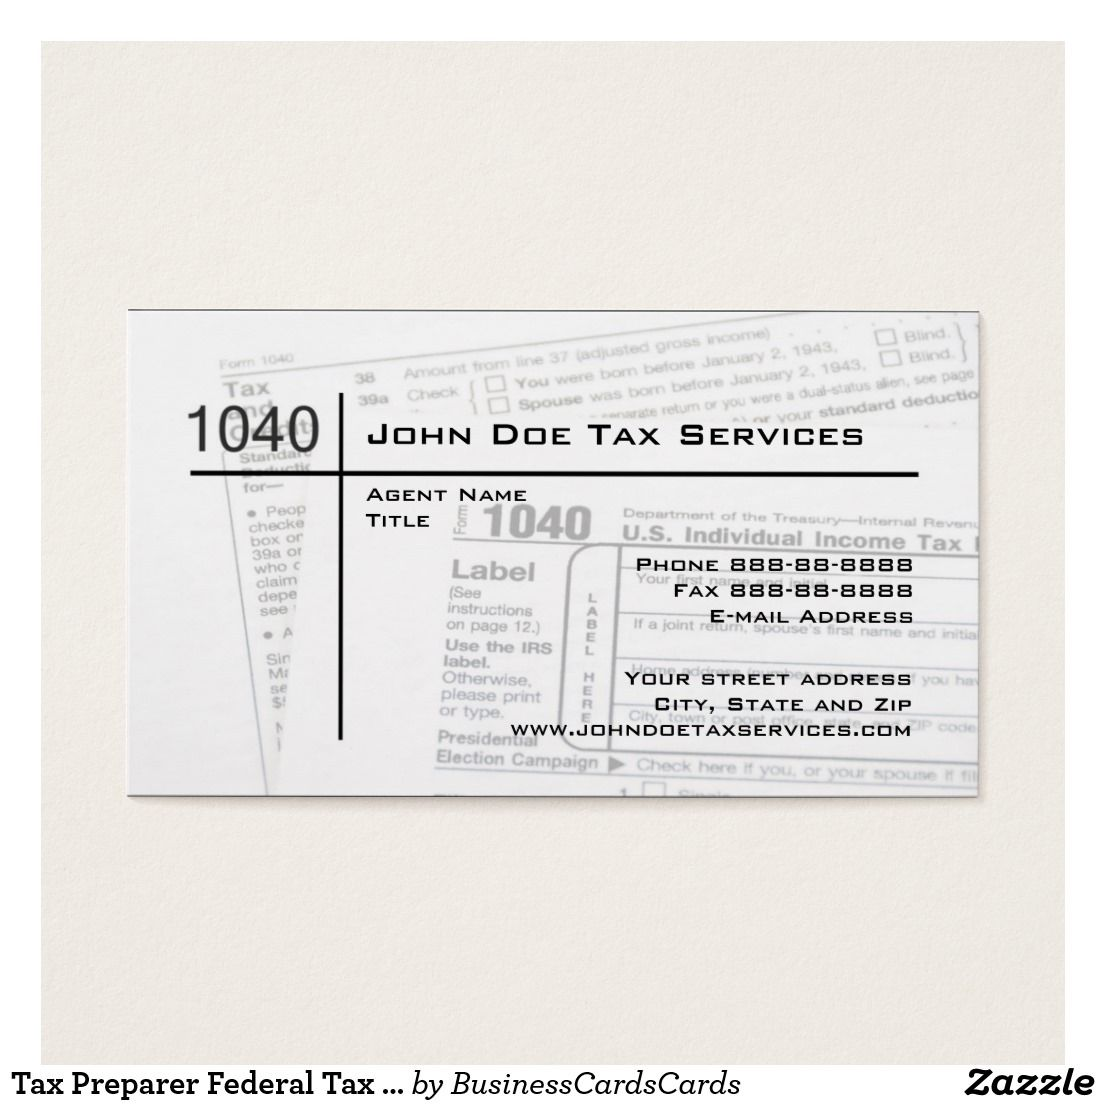 Tax Preparer Federal Tax Form Business Card Accountant Bookkeeper ...